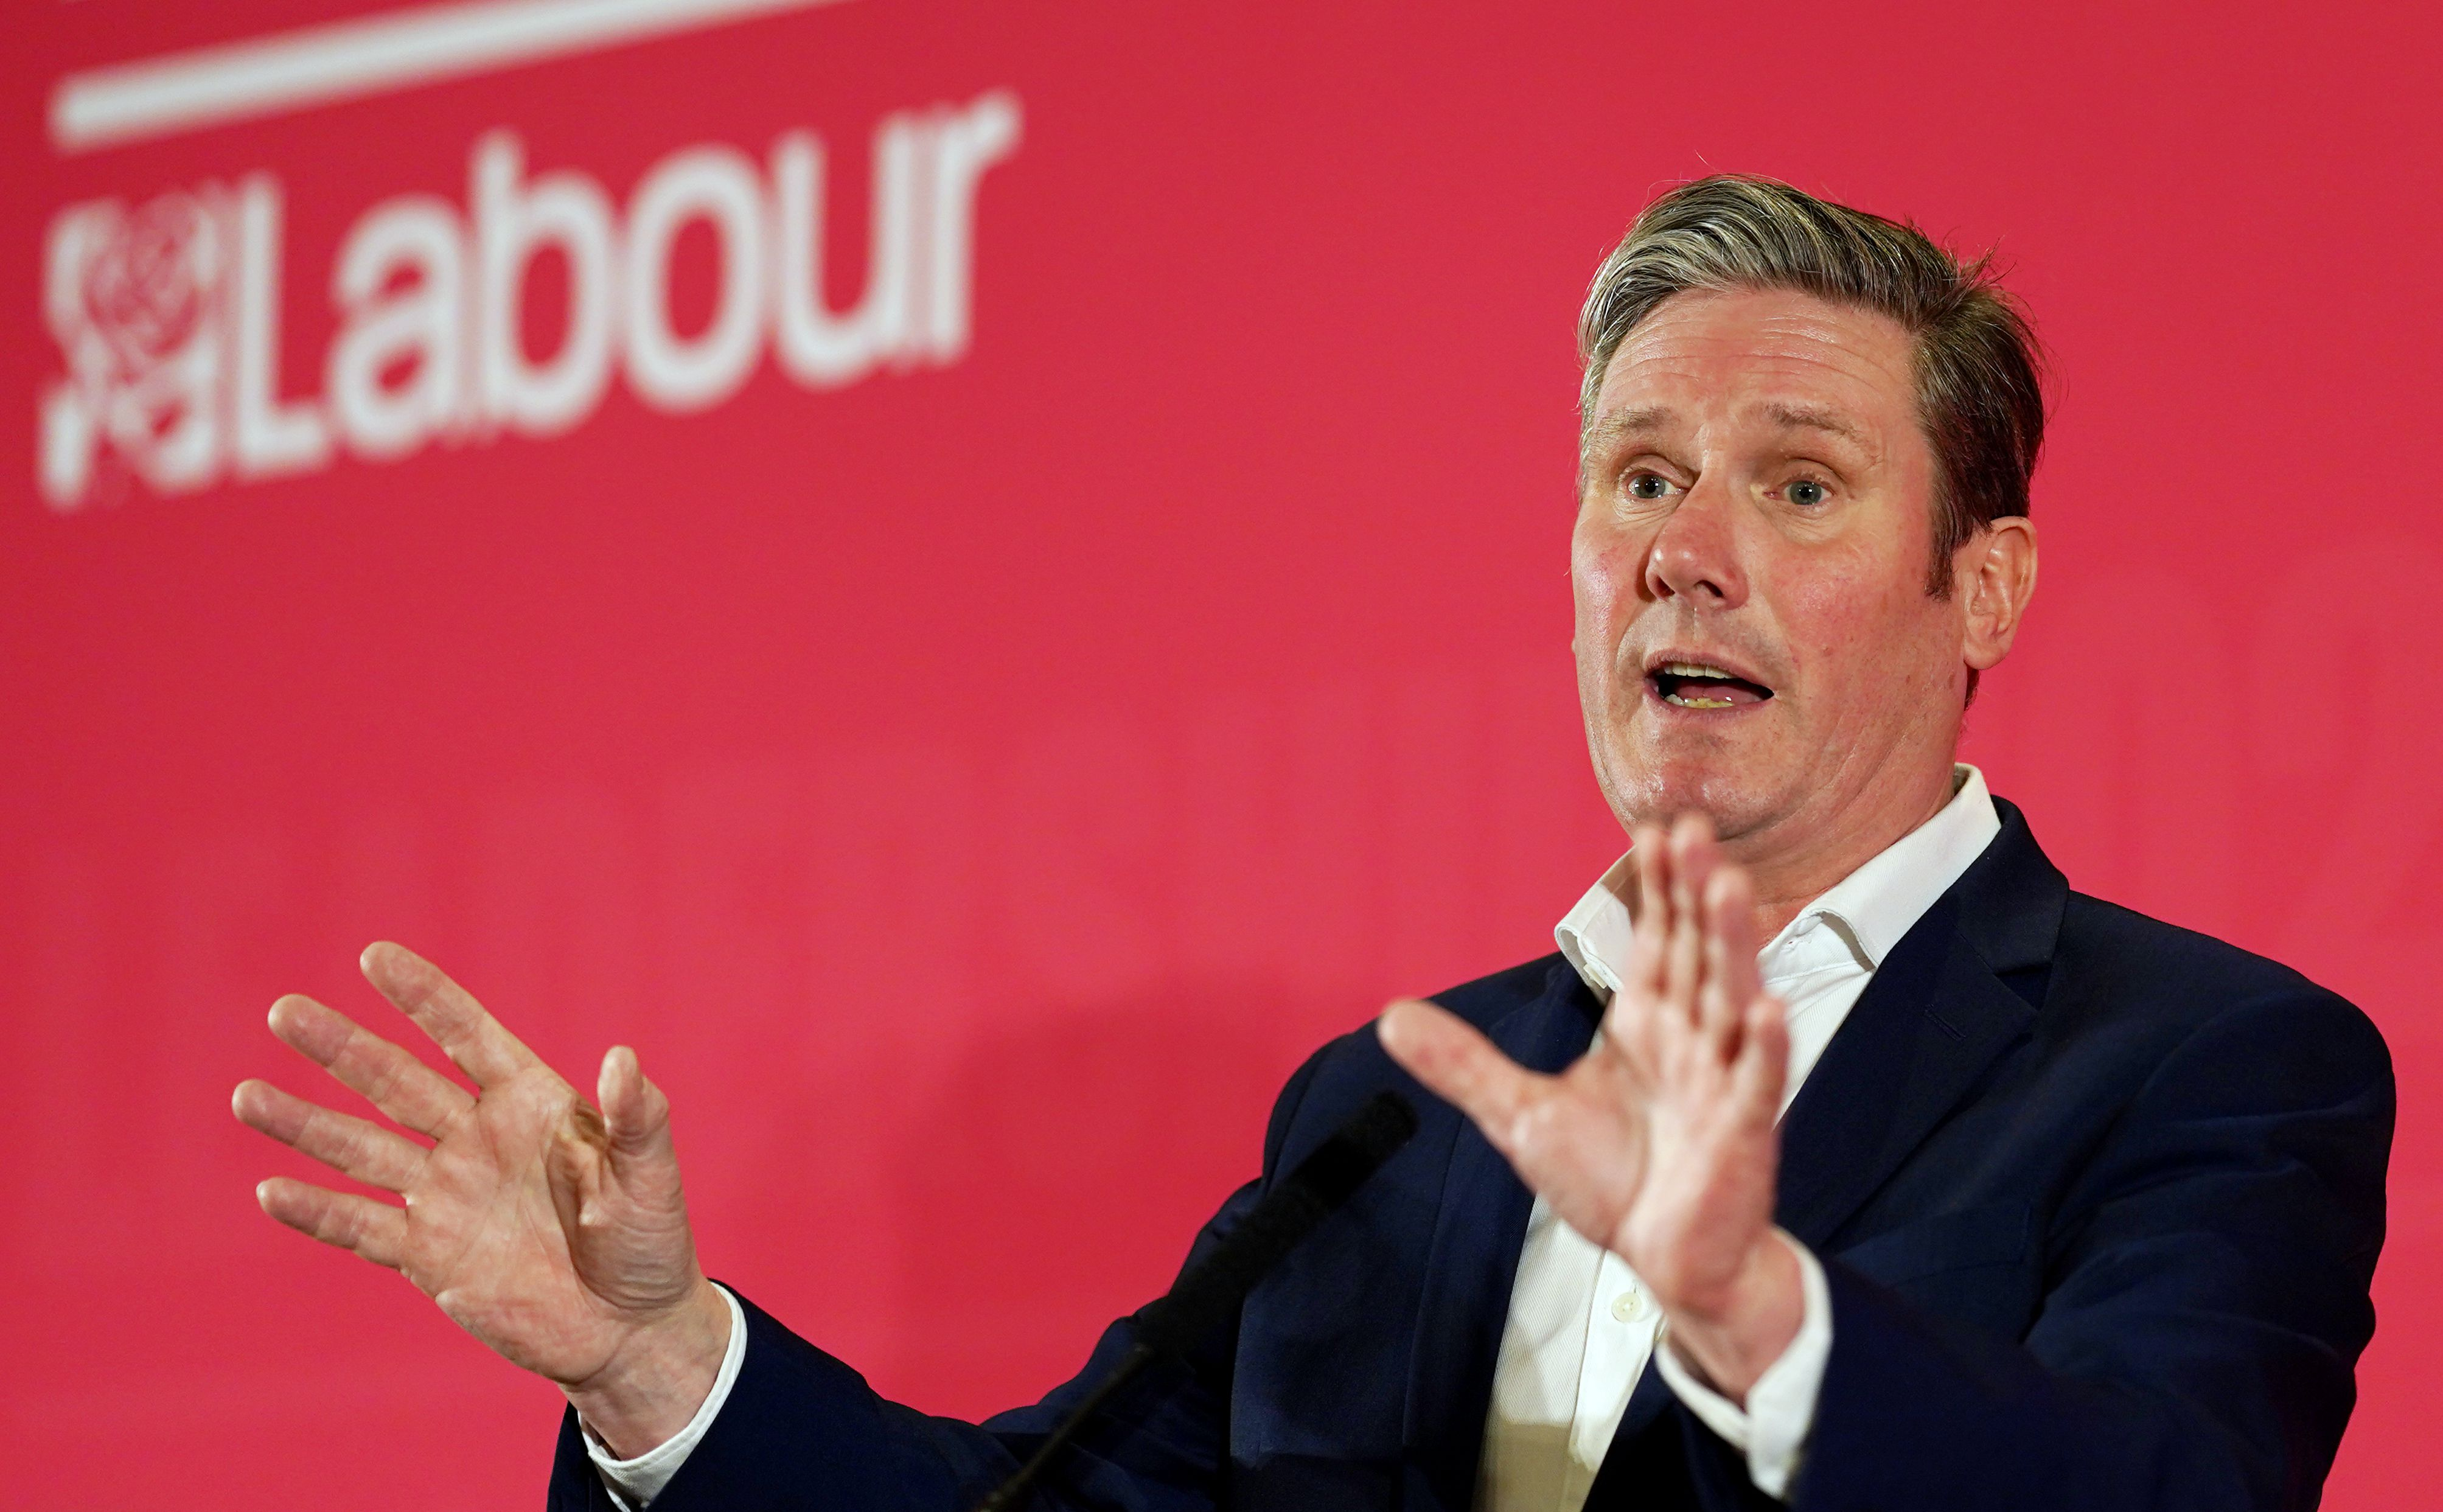 Keir Starmer elected to lead U.K. Labour Party